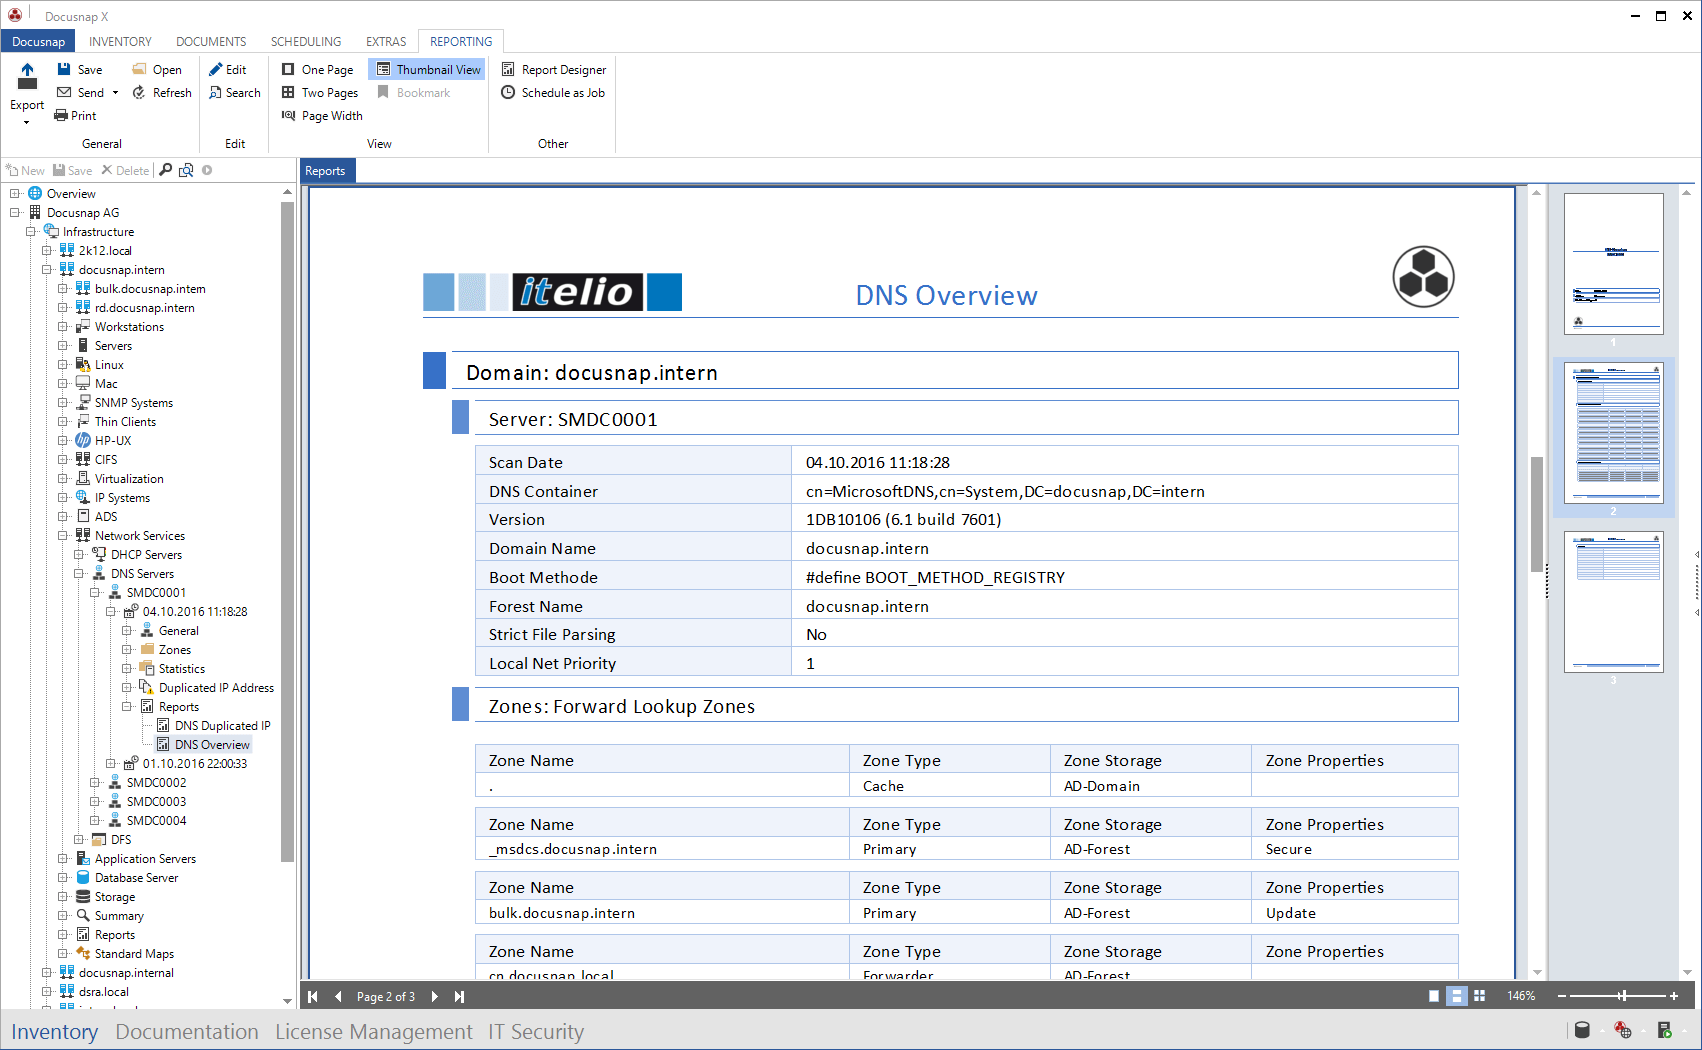 Report DNS Overview